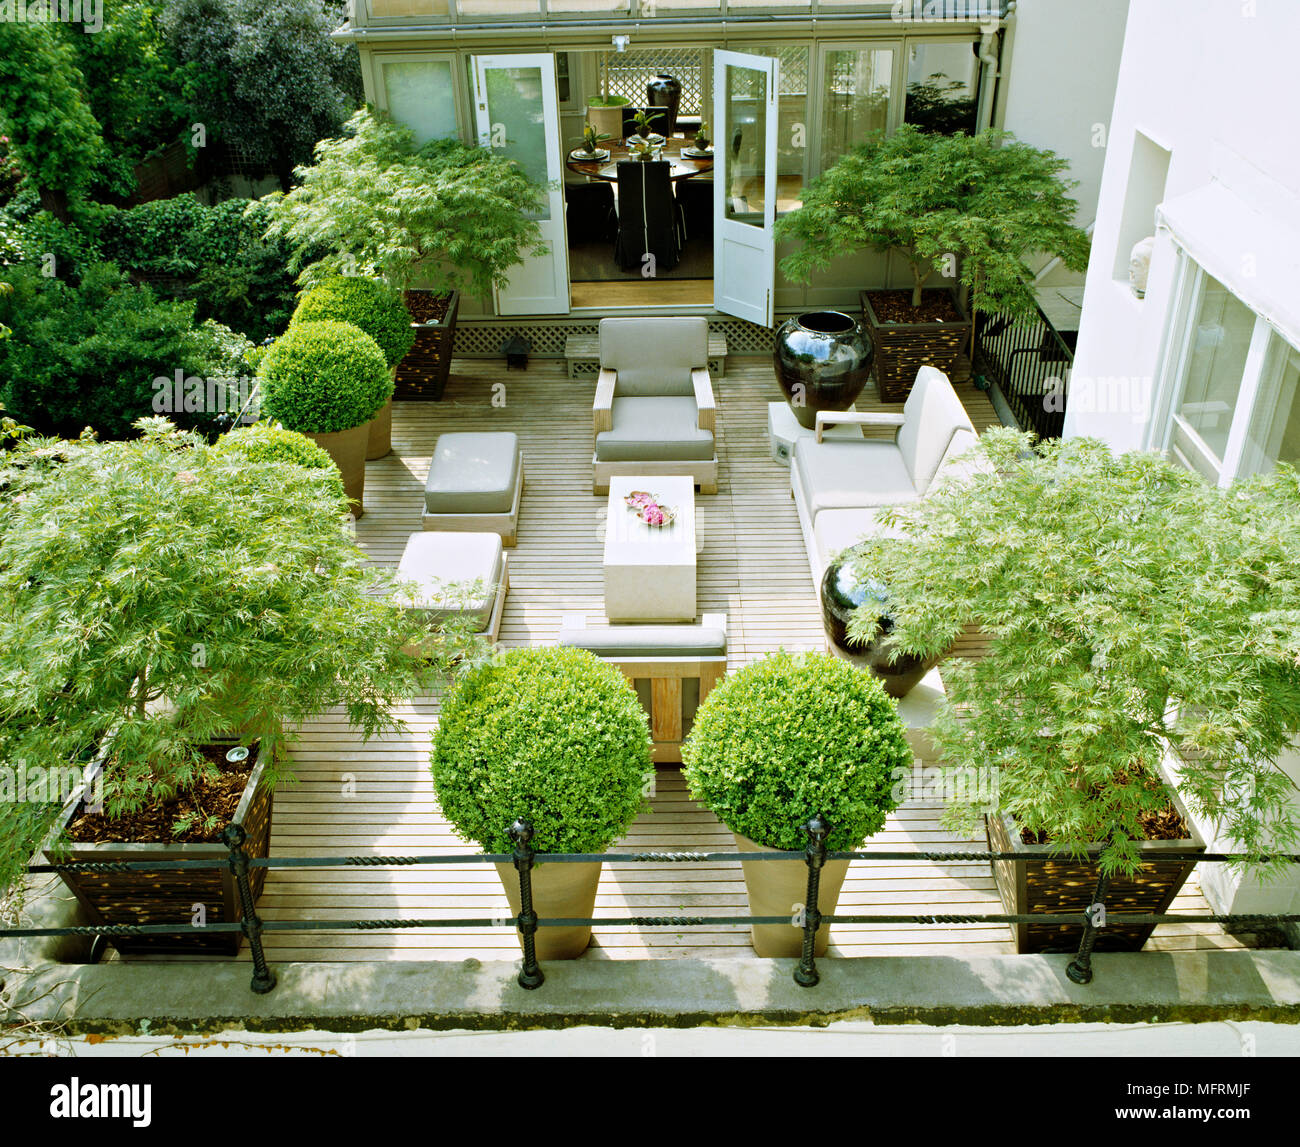 Home Garden Design Ideas India: A Modern Town Garden Roof Terrace With Decked Patio Area